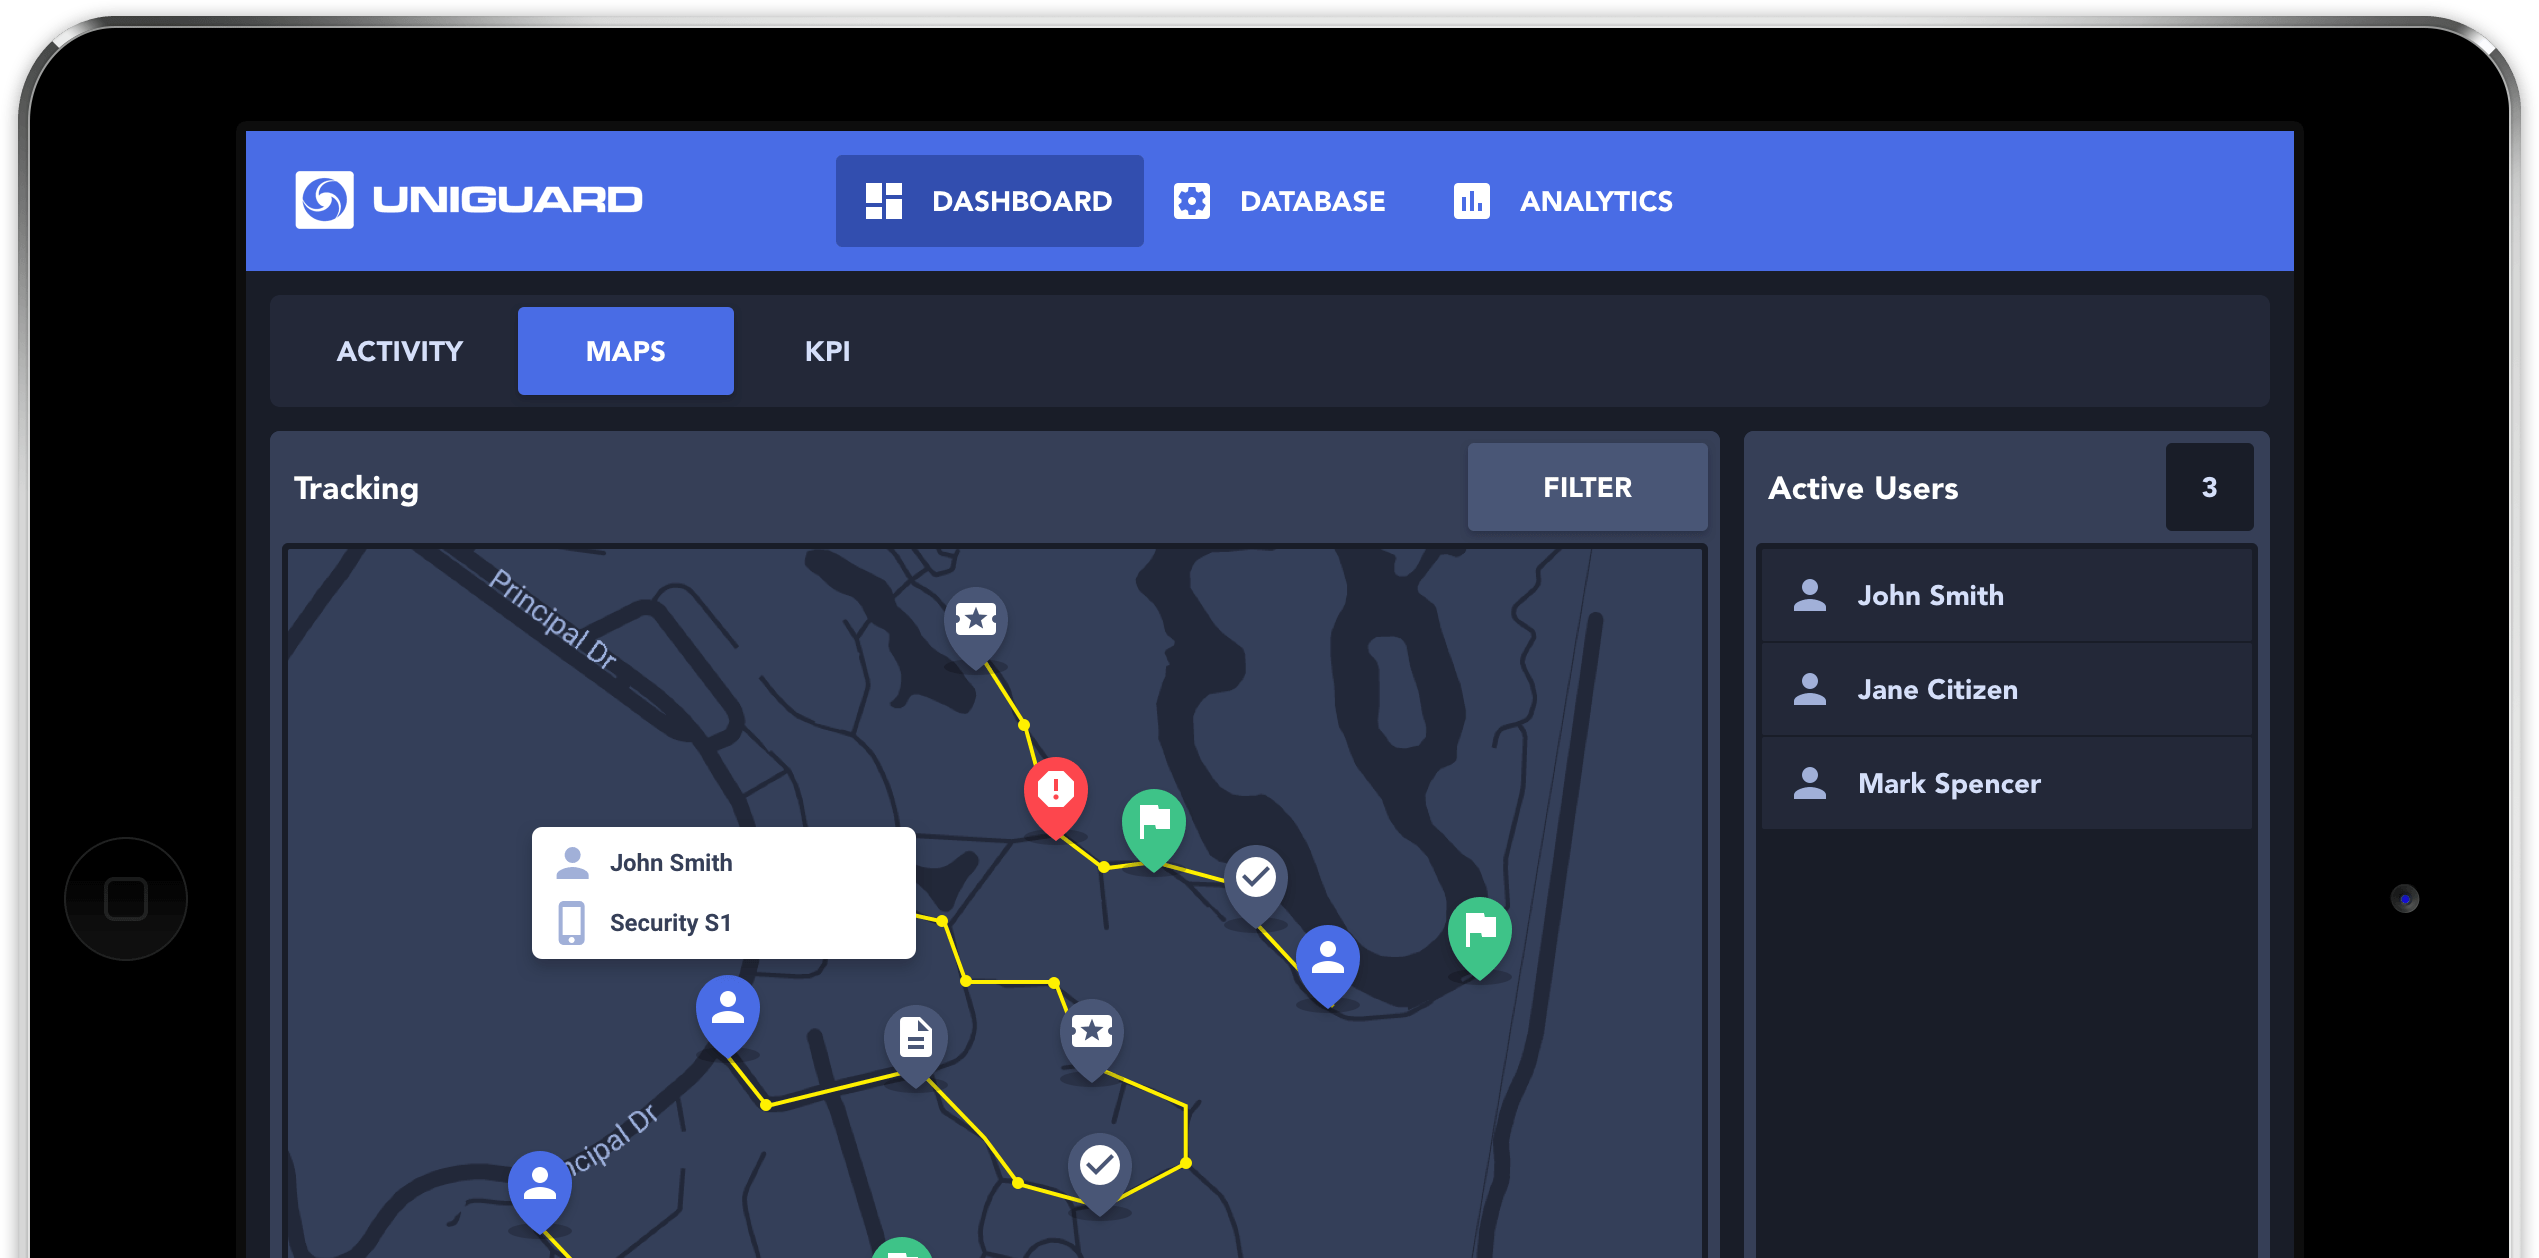 UniGuard Web Dashboard Live GPS Tracking